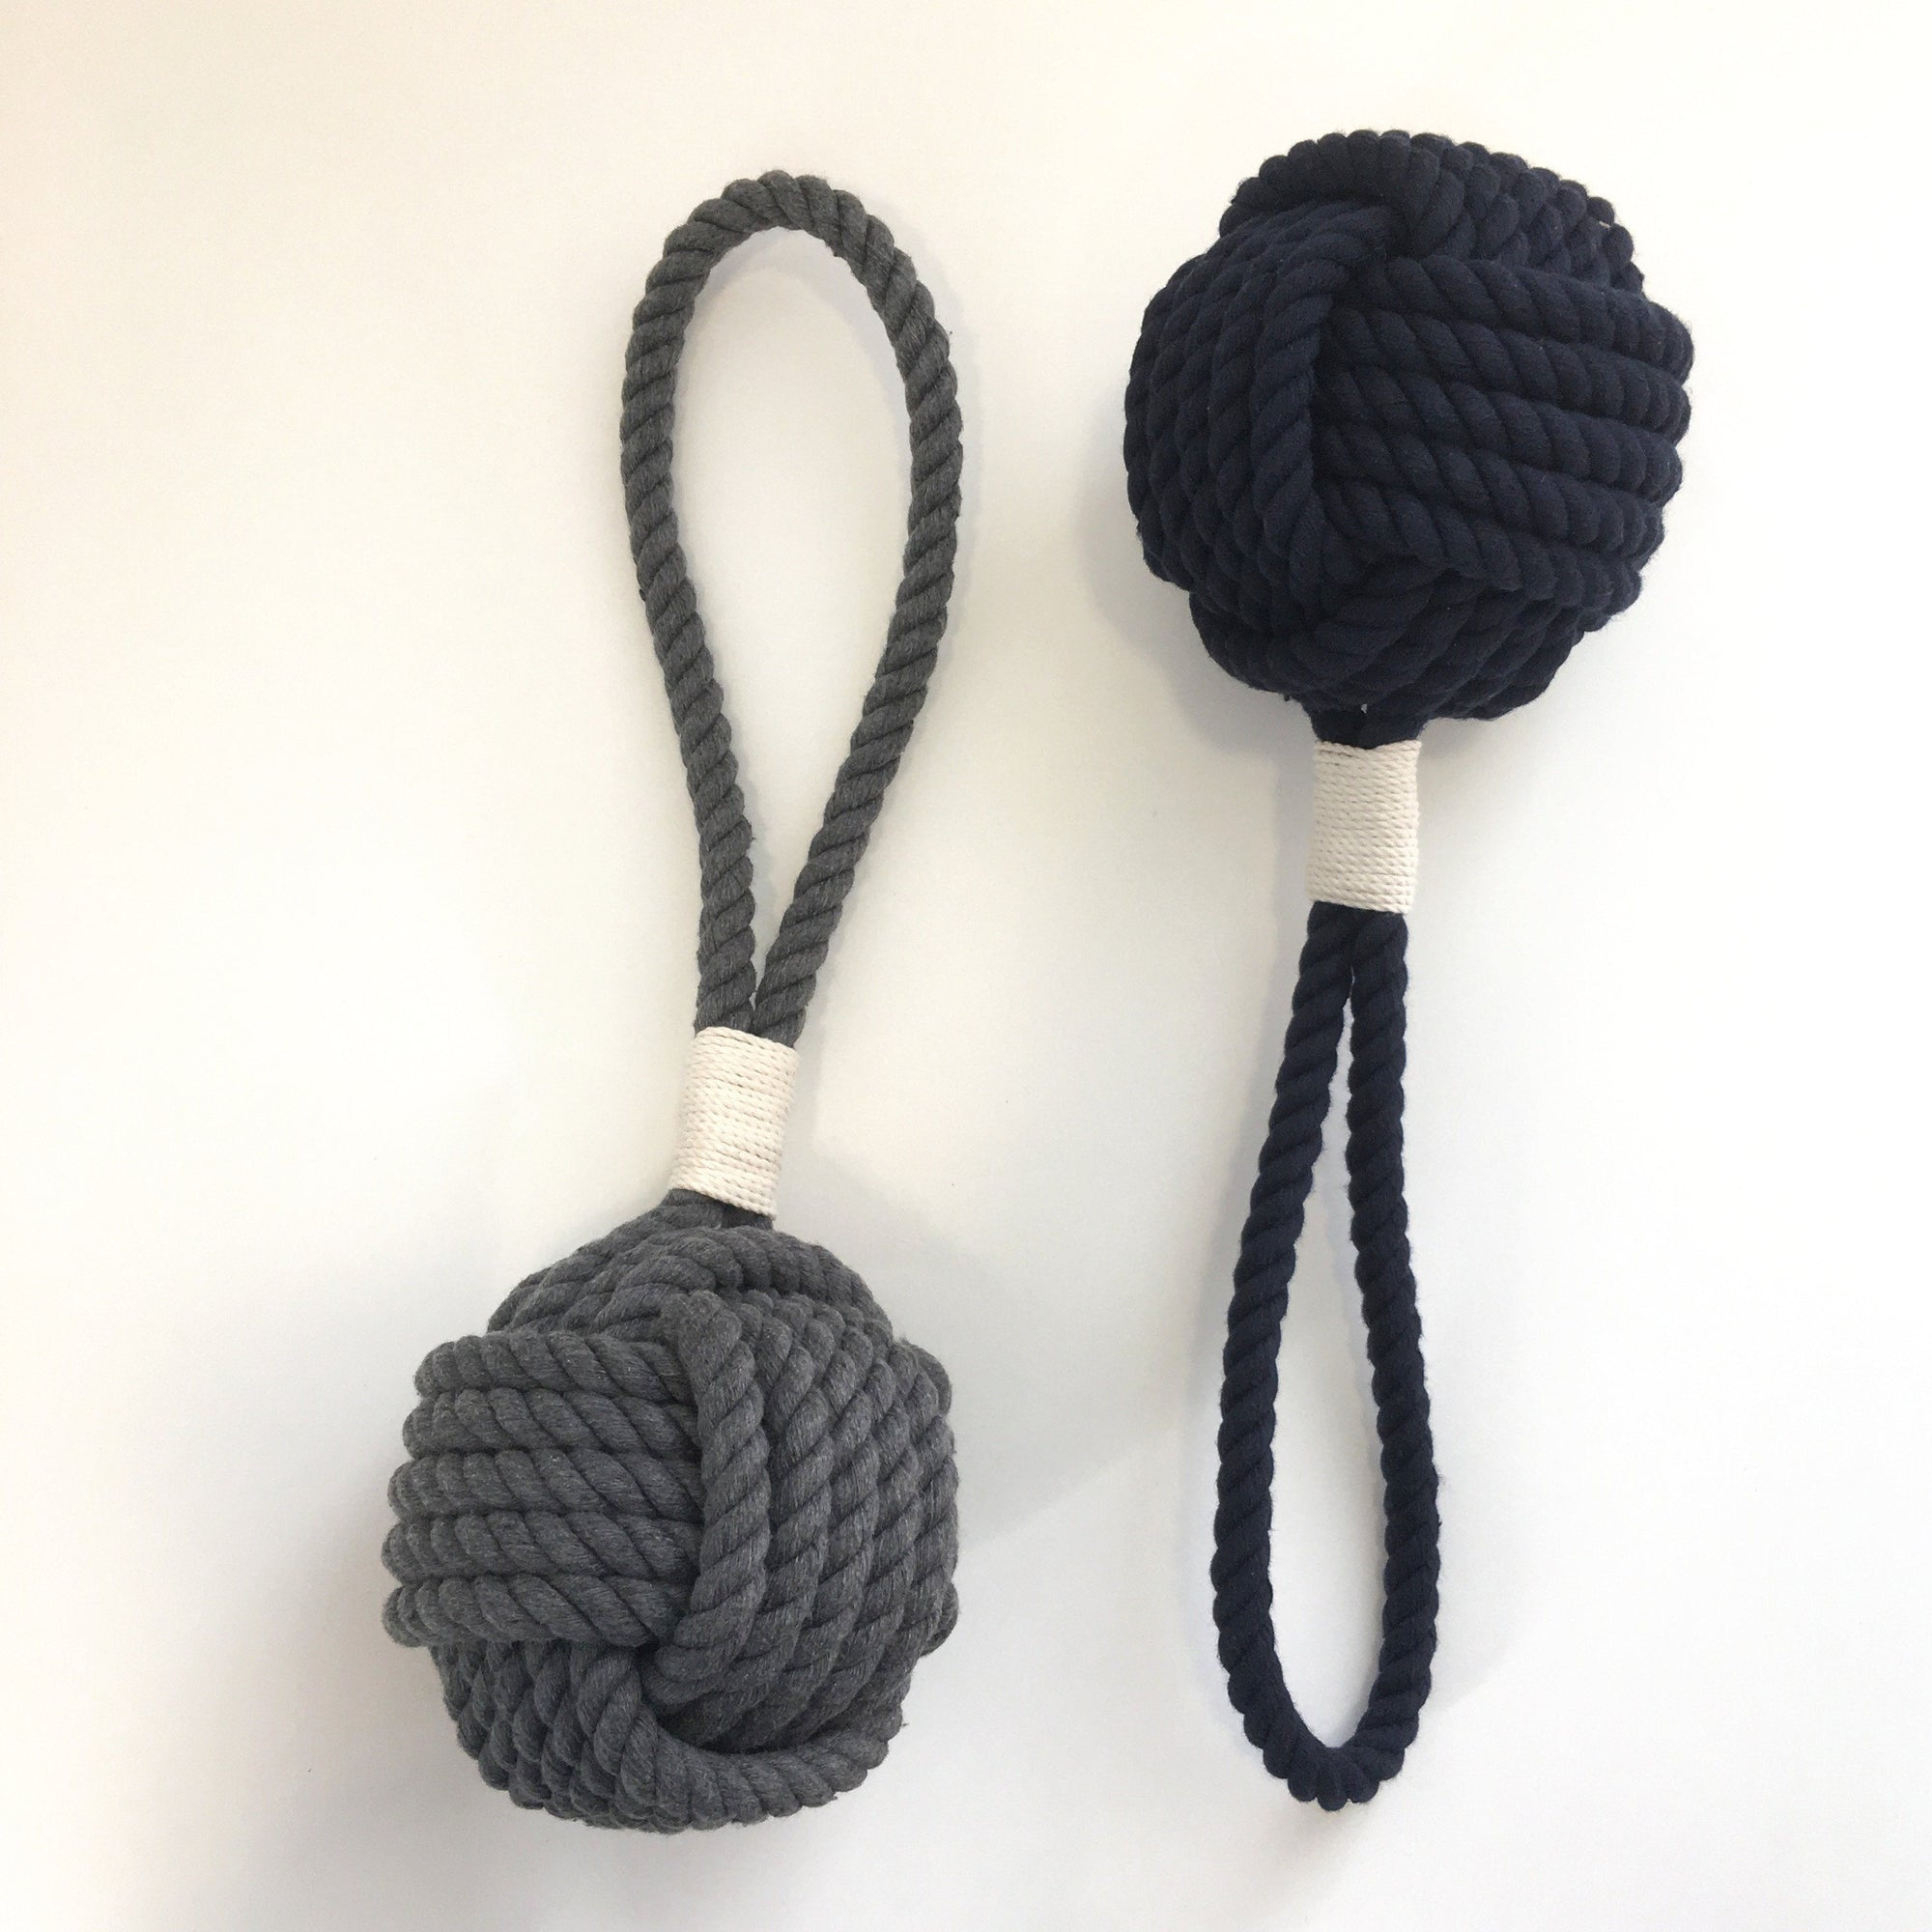 Nautical Knot Monkey Fist Rope Dog Toy - New Colors - Gray and Navy Blue handmade at Mystic Knotwork